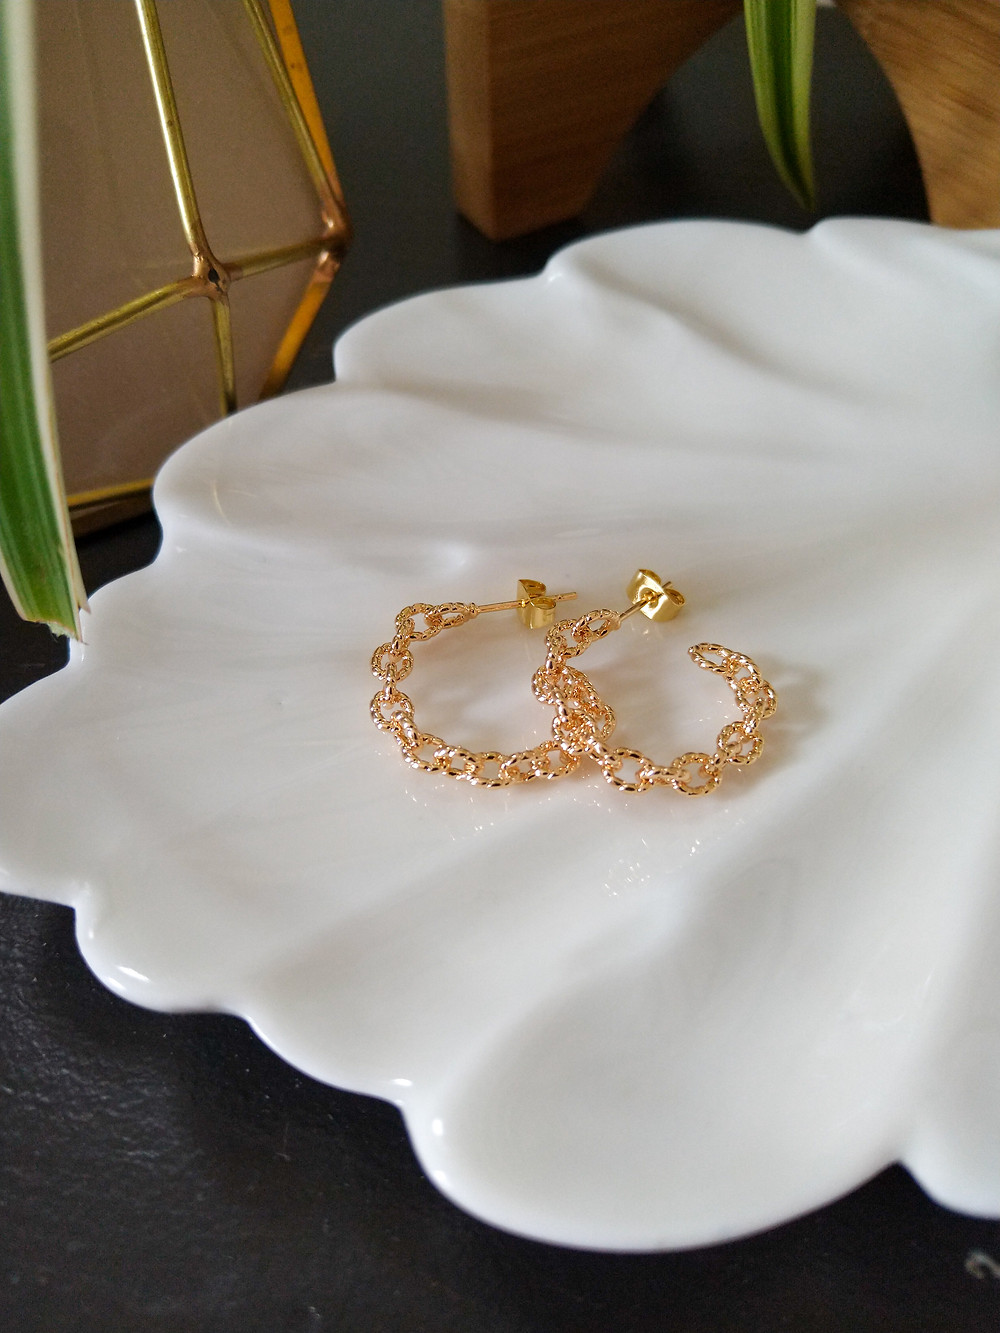 gold, fine jewlery created by a woman small owned business in toronto canada